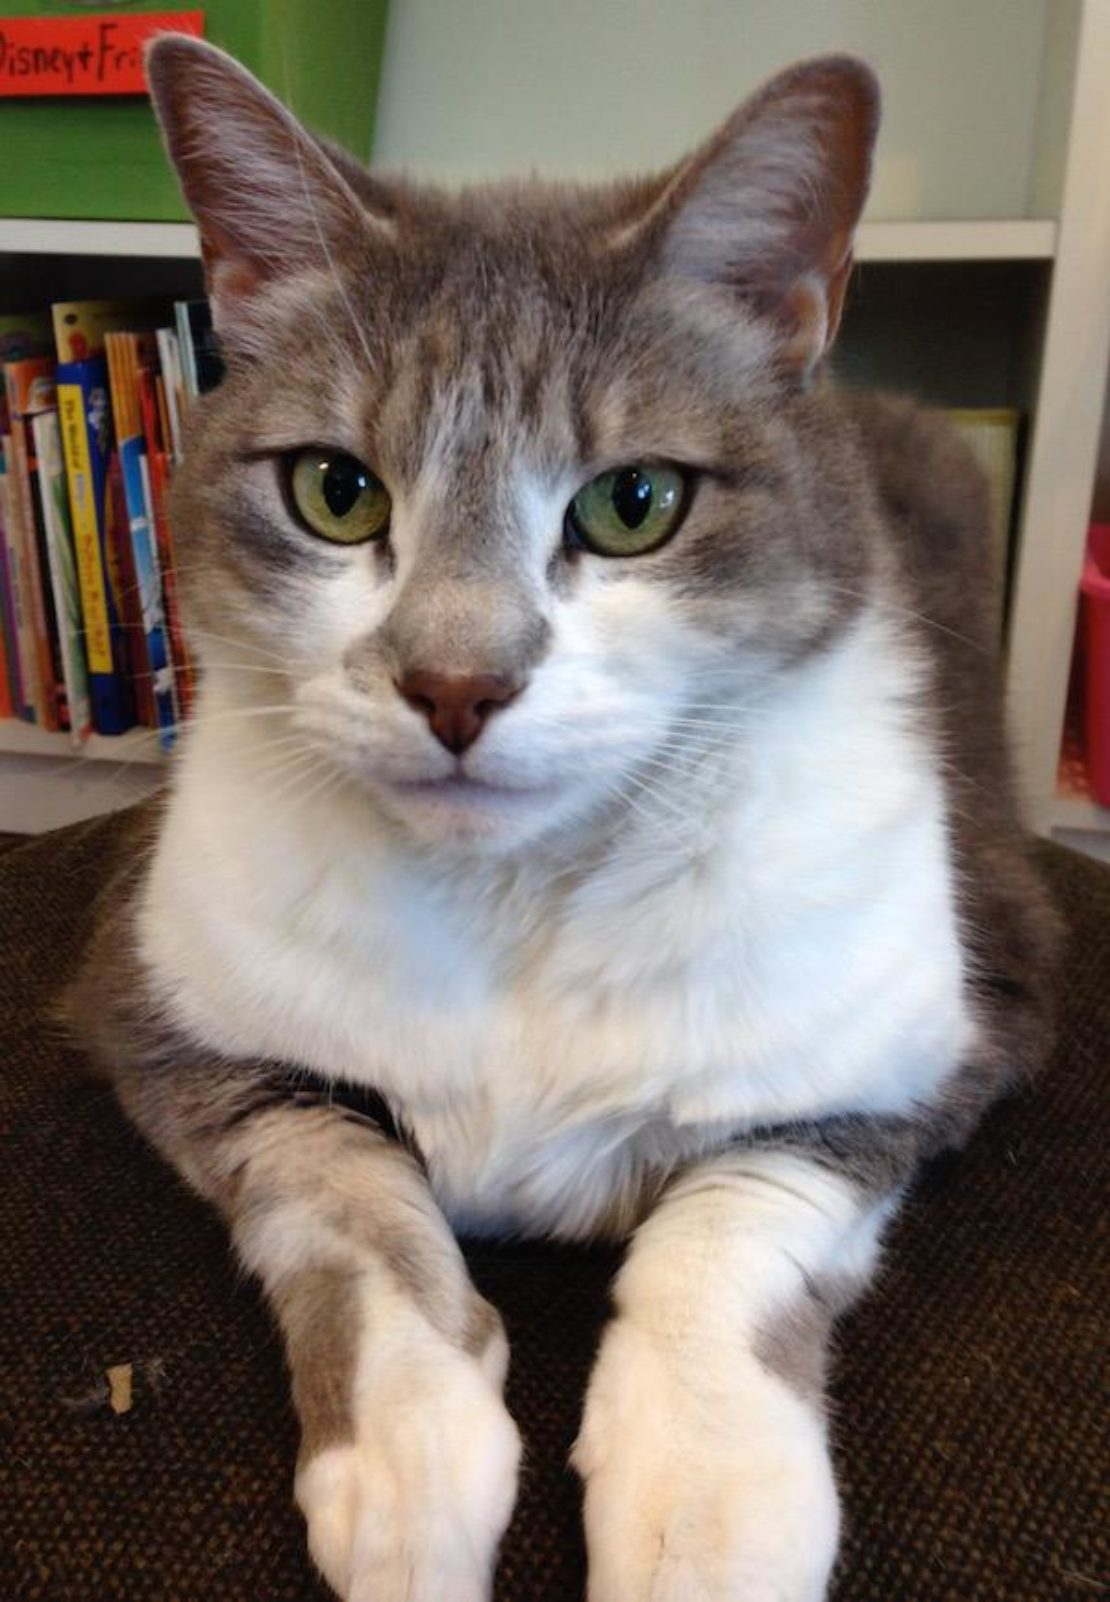 Cat with tiger stripes and huge white bib. She has a triangle of brown on her nose. She relaxes, paws forward, in front of bookshelves.